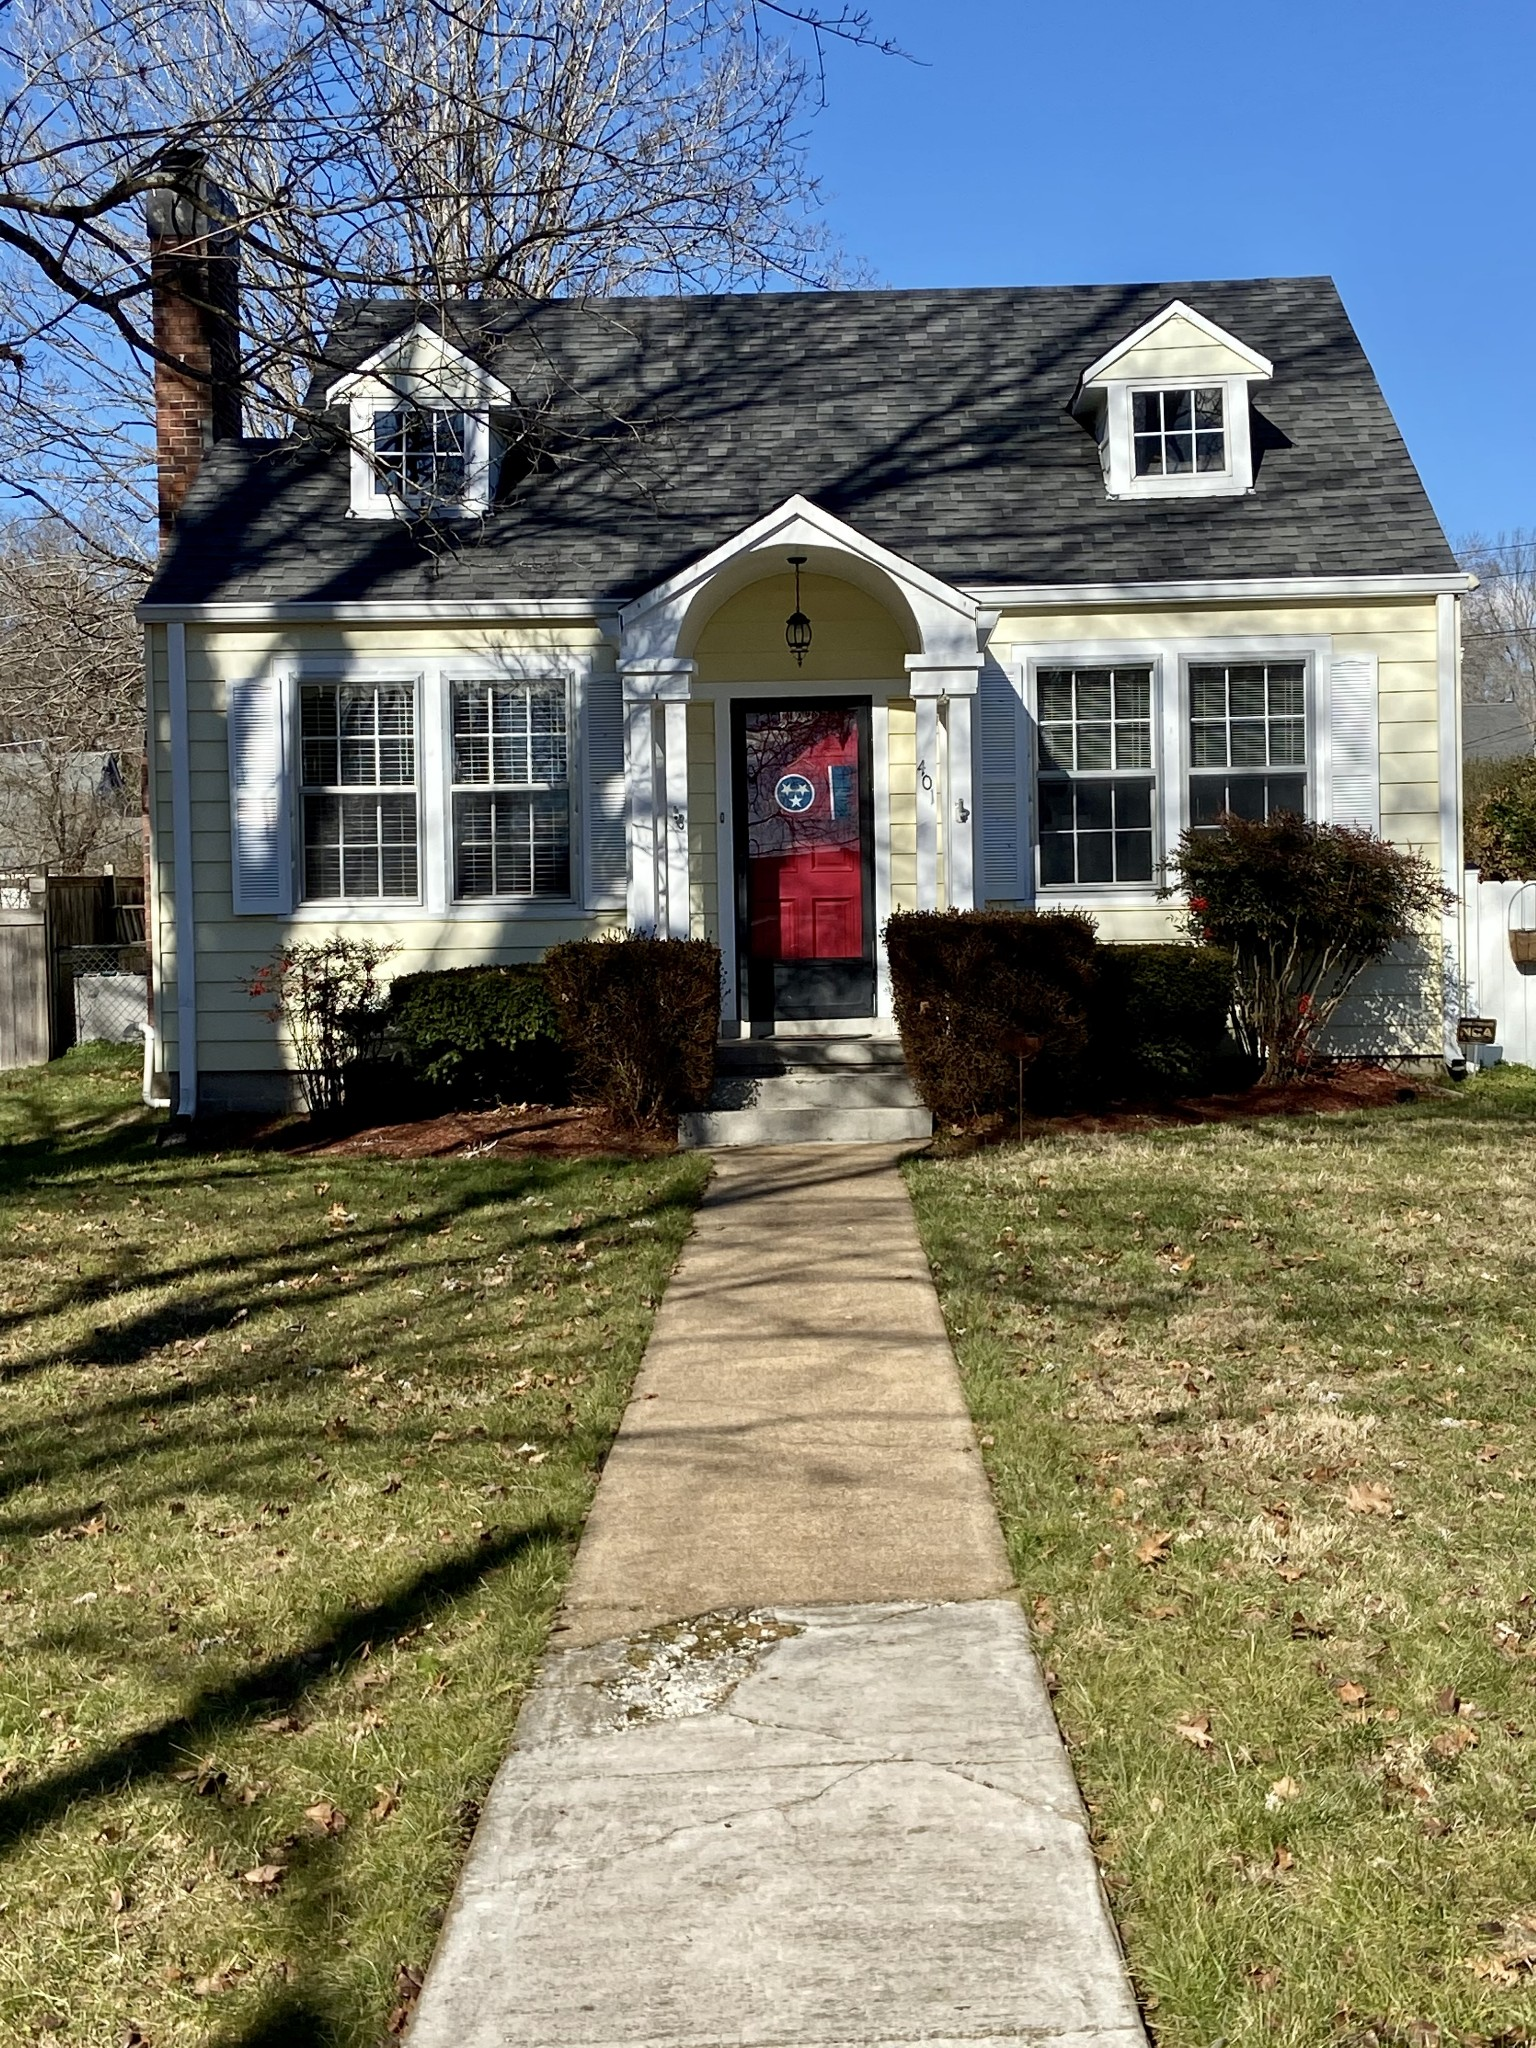 Remodeled home with shop. List of improvements attached to listing. Kitchen with granite countertop and stainless appliances. Hardwood and tile floors. New plumbing and electric. A must see! Professional pictures will be posted soon.